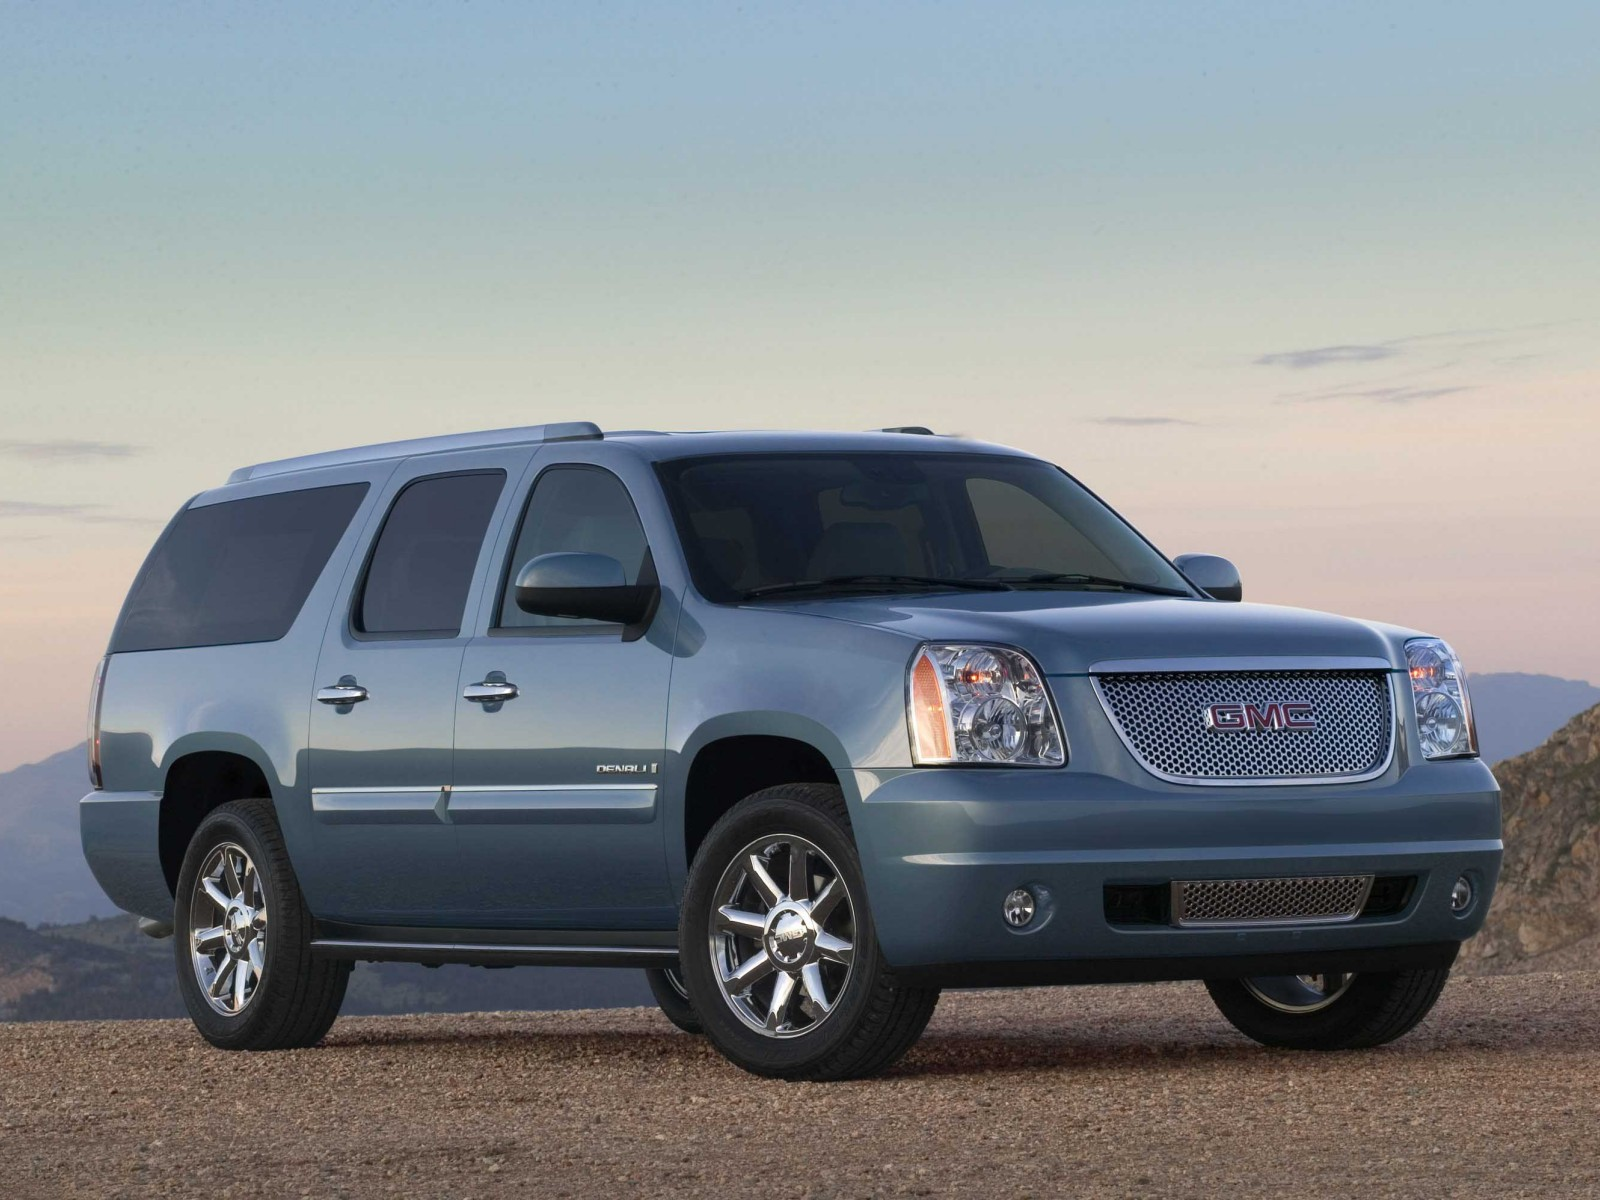 2009 gmc yukon xl information and photos zombiedrive. Black Bedroom Furniture Sets. Home Design Ideas